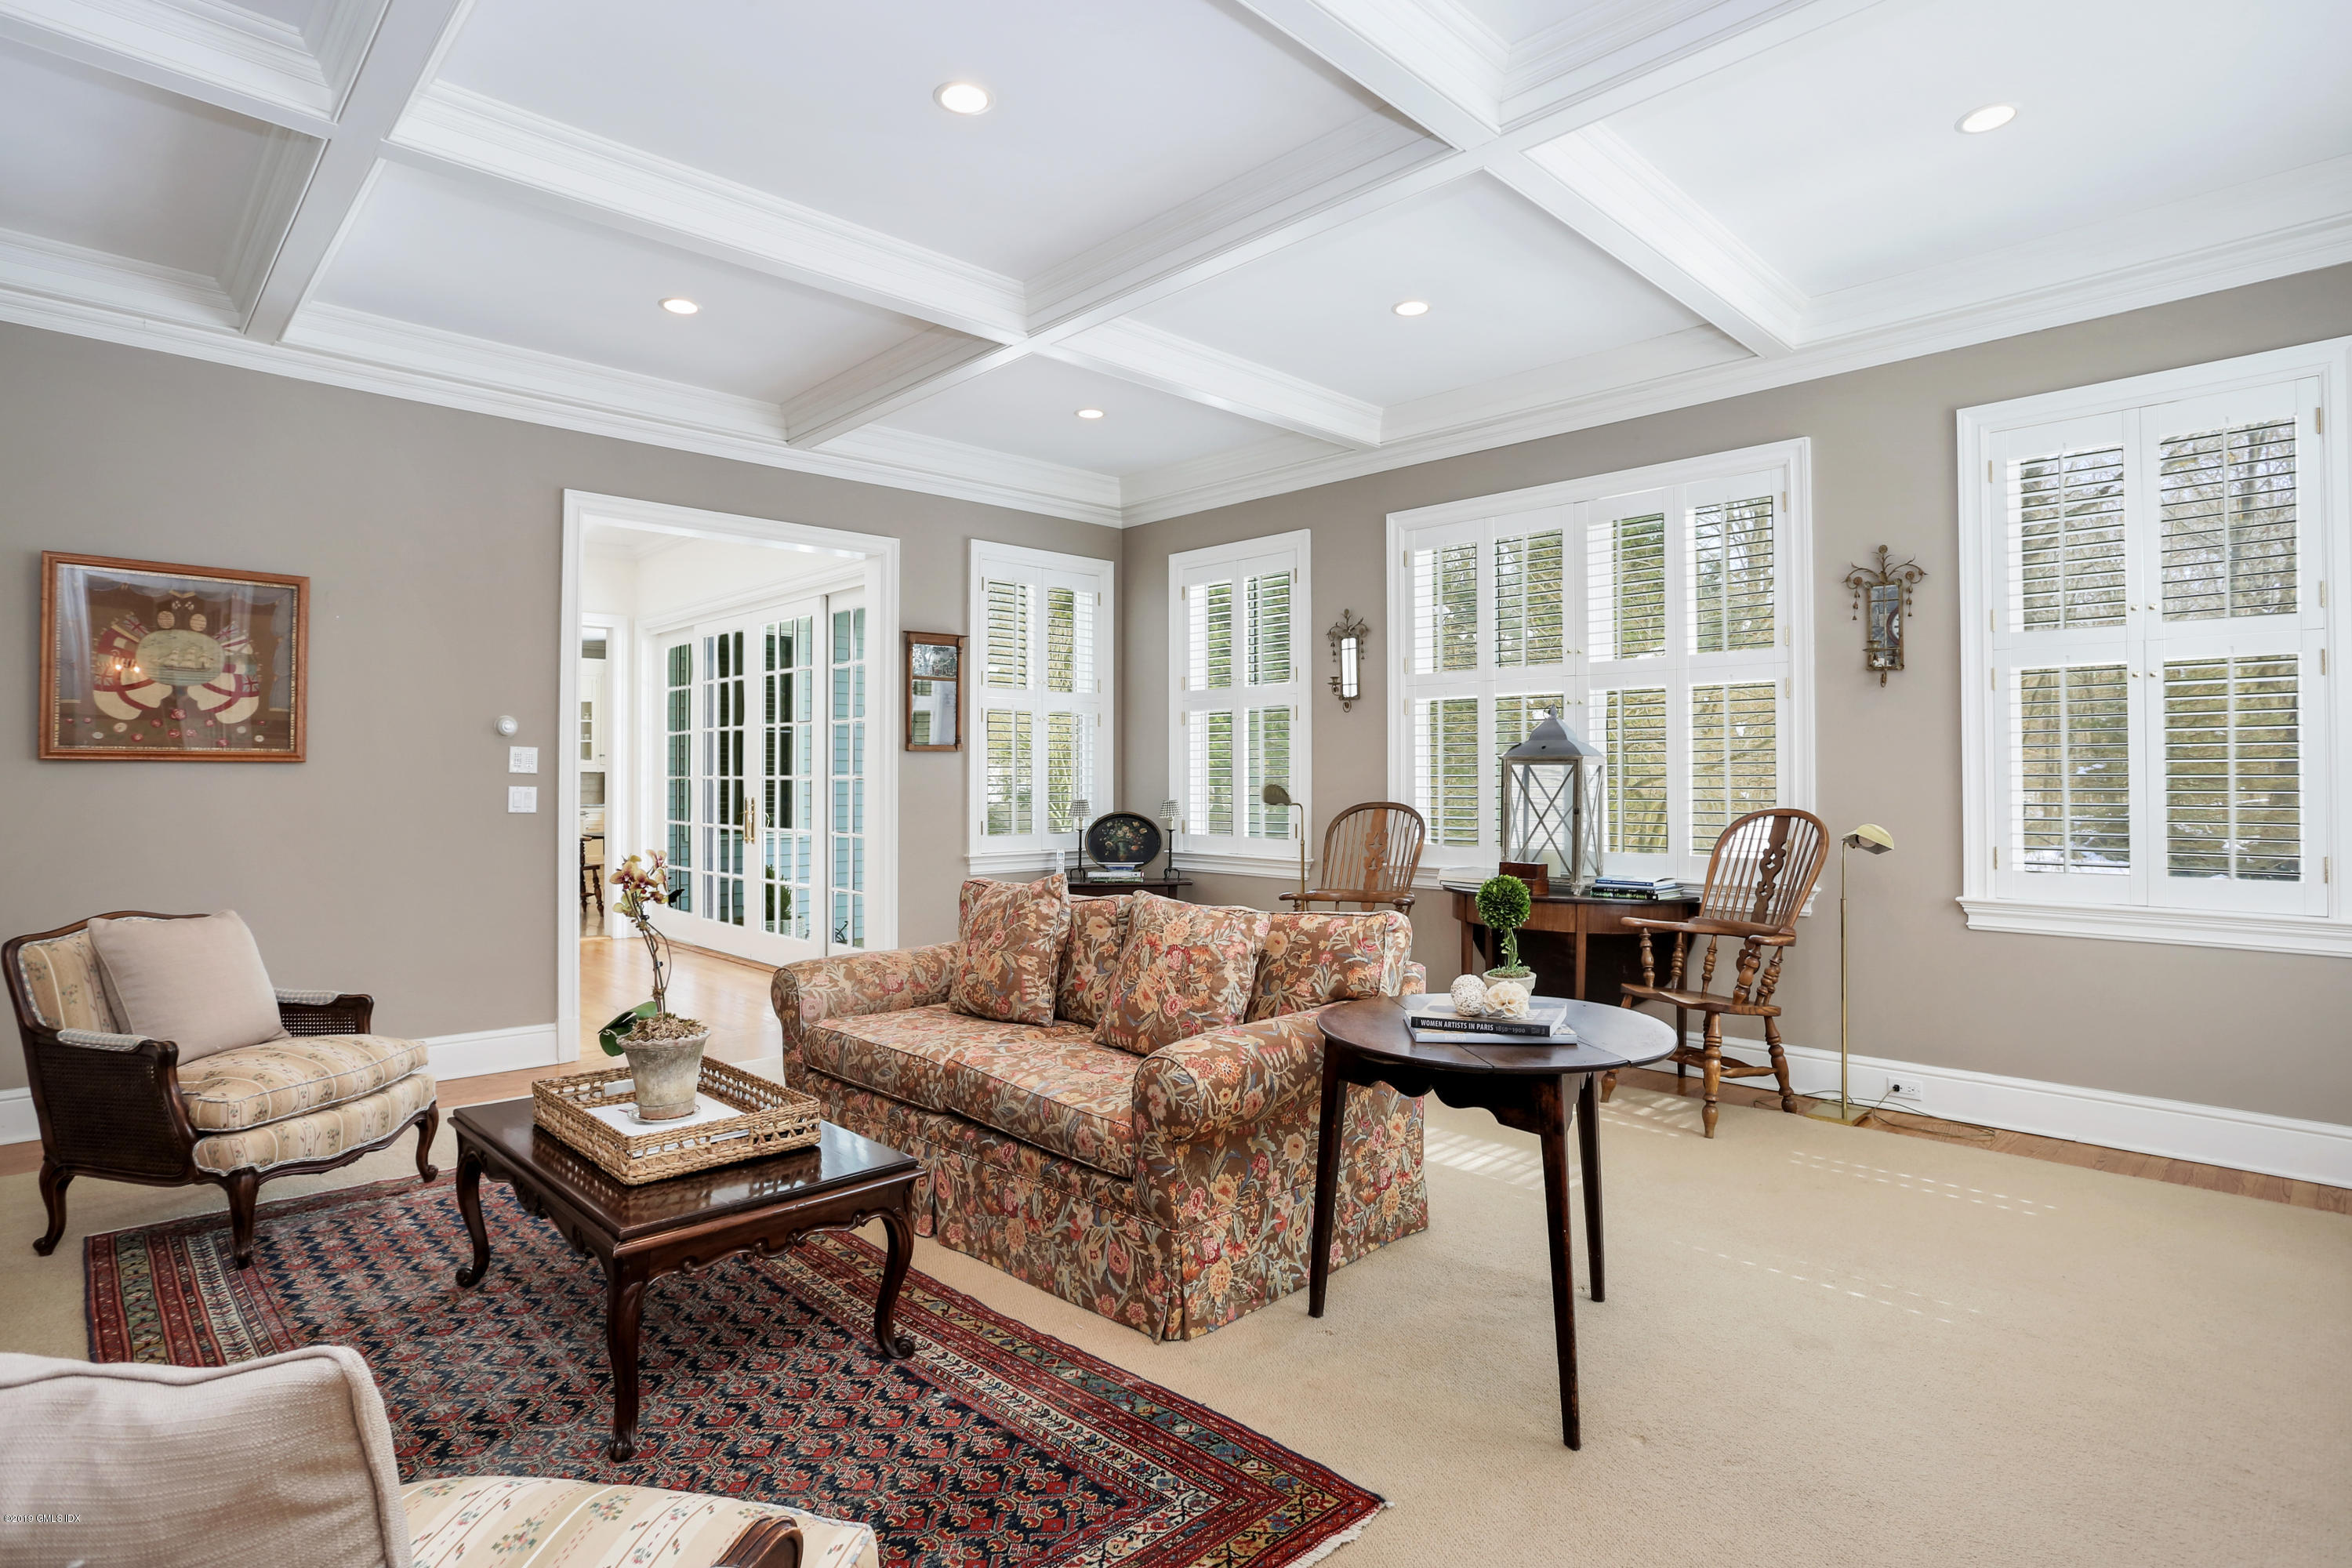 15 Sherwood Farm Lane, Greenwich, CT 06831